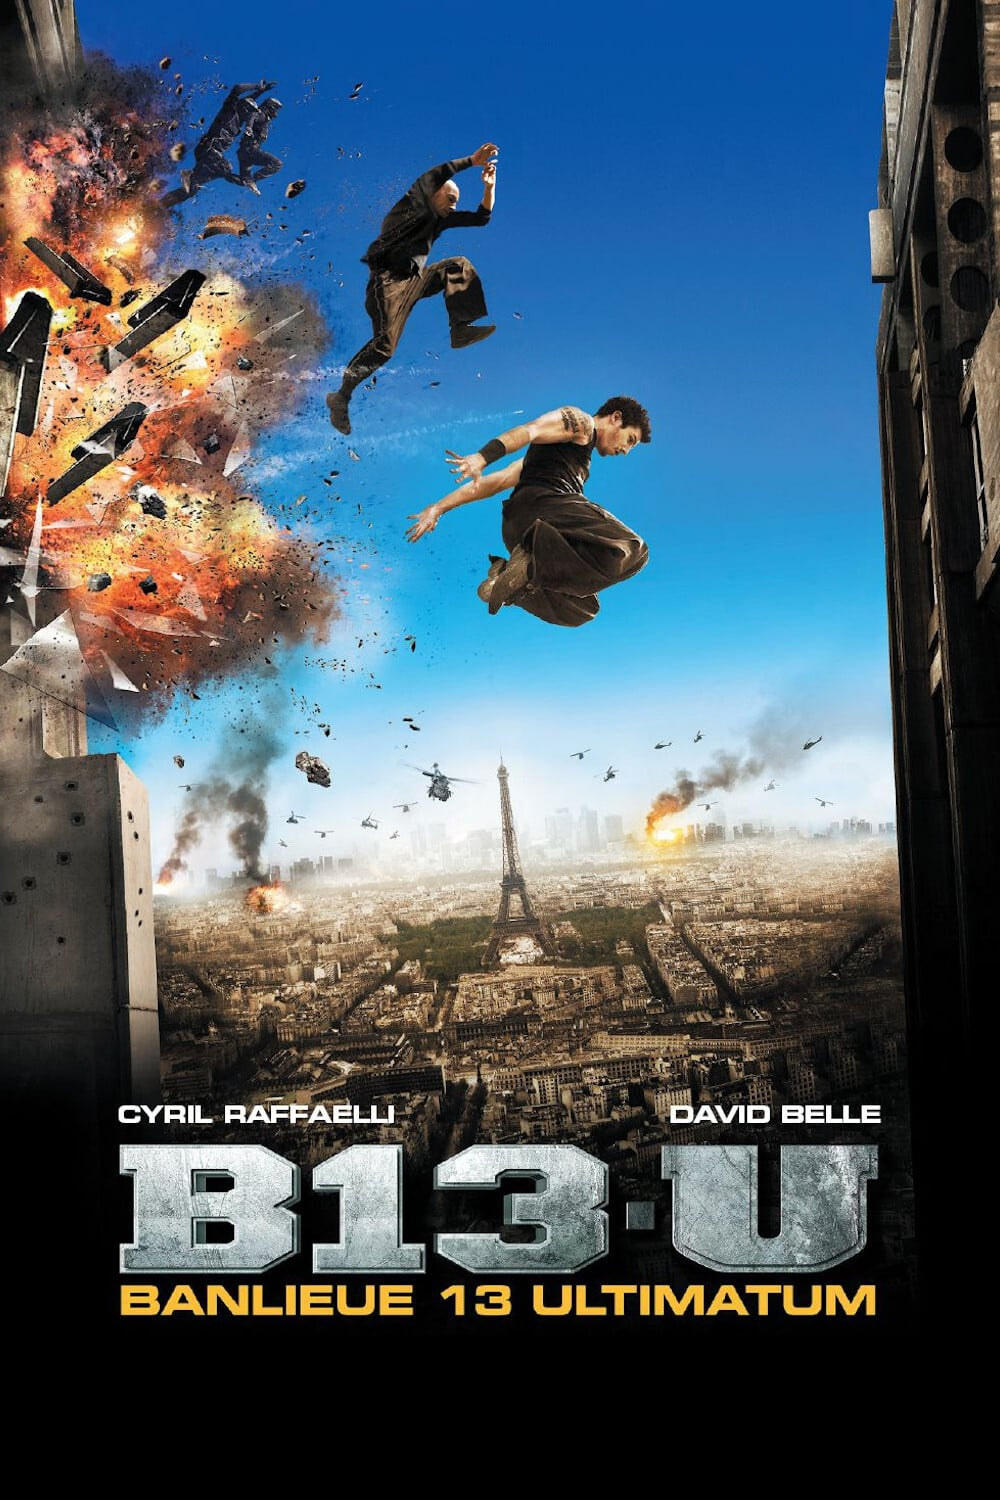 Image Banlieue 13 - Ultimatum